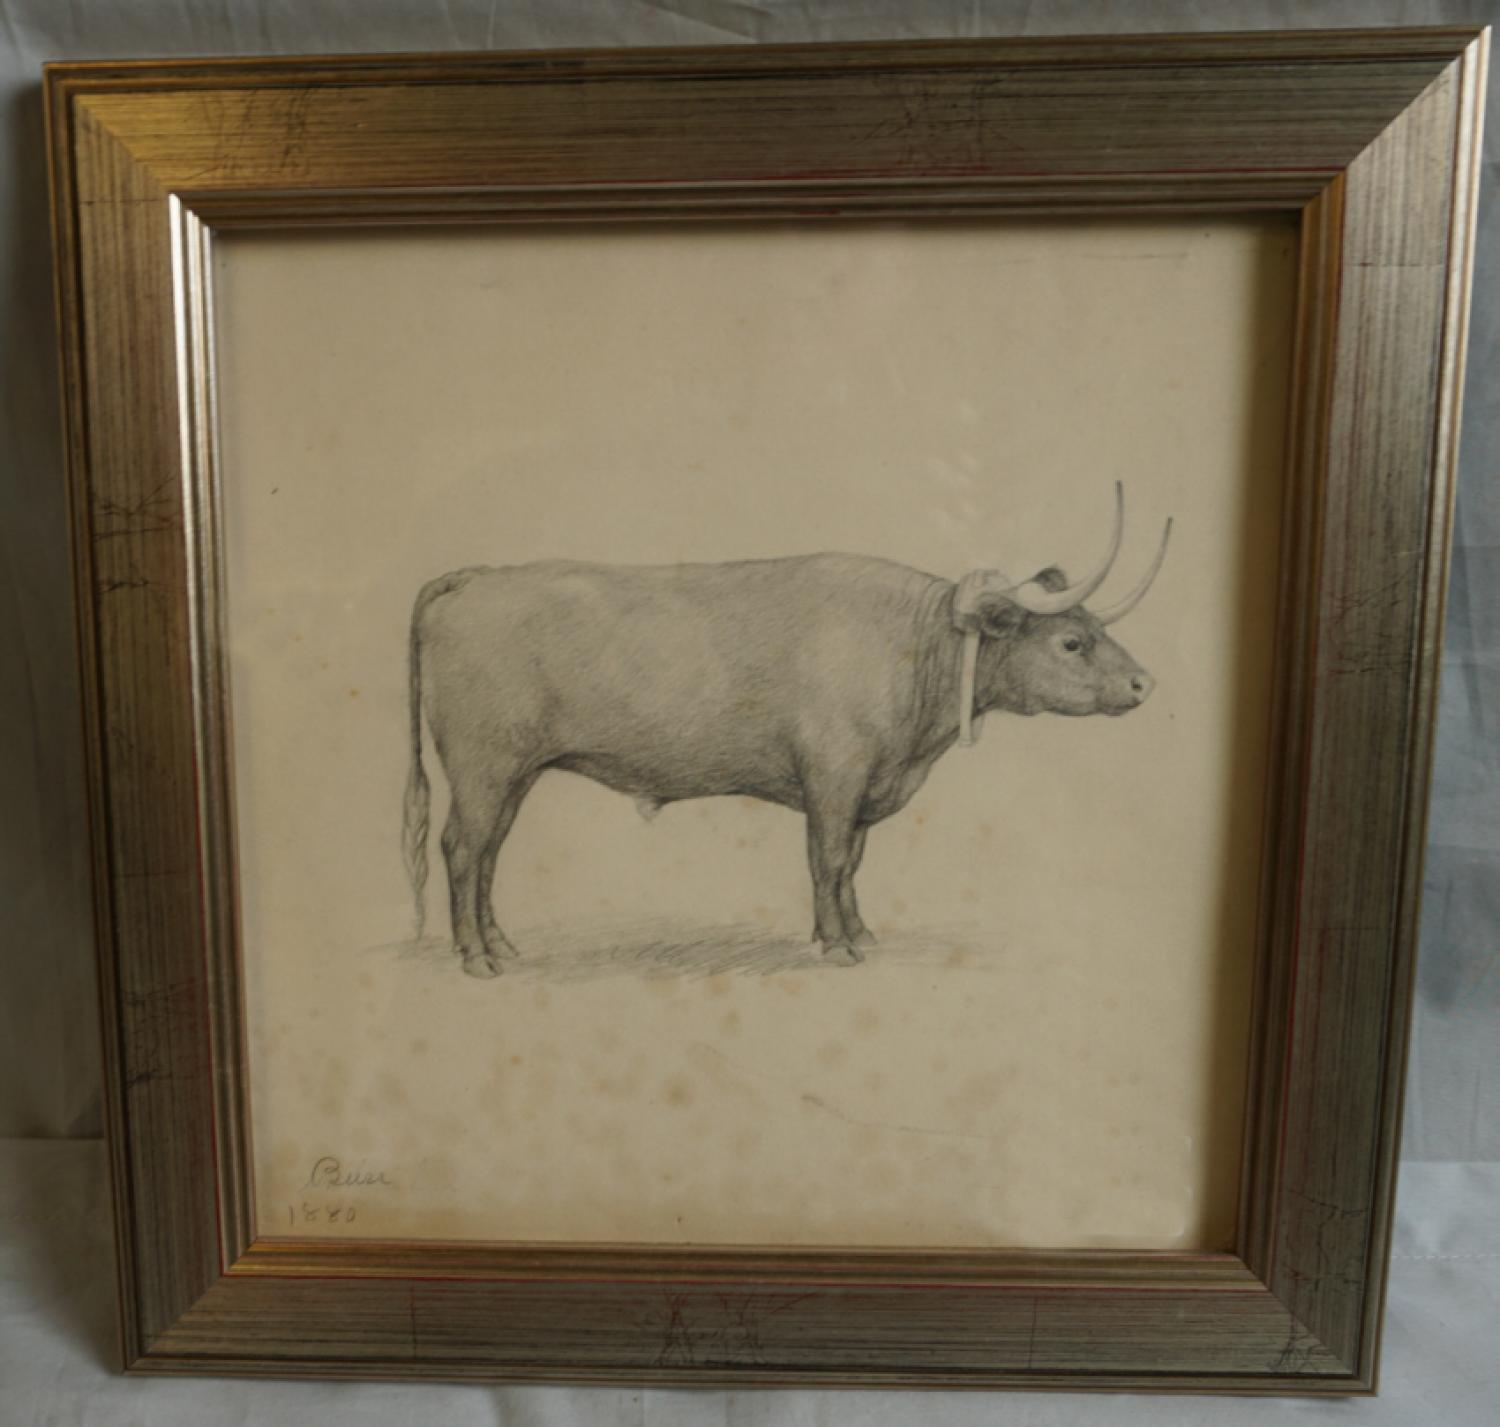 Fannie Burr pencil drawing of a bull on paper 1880